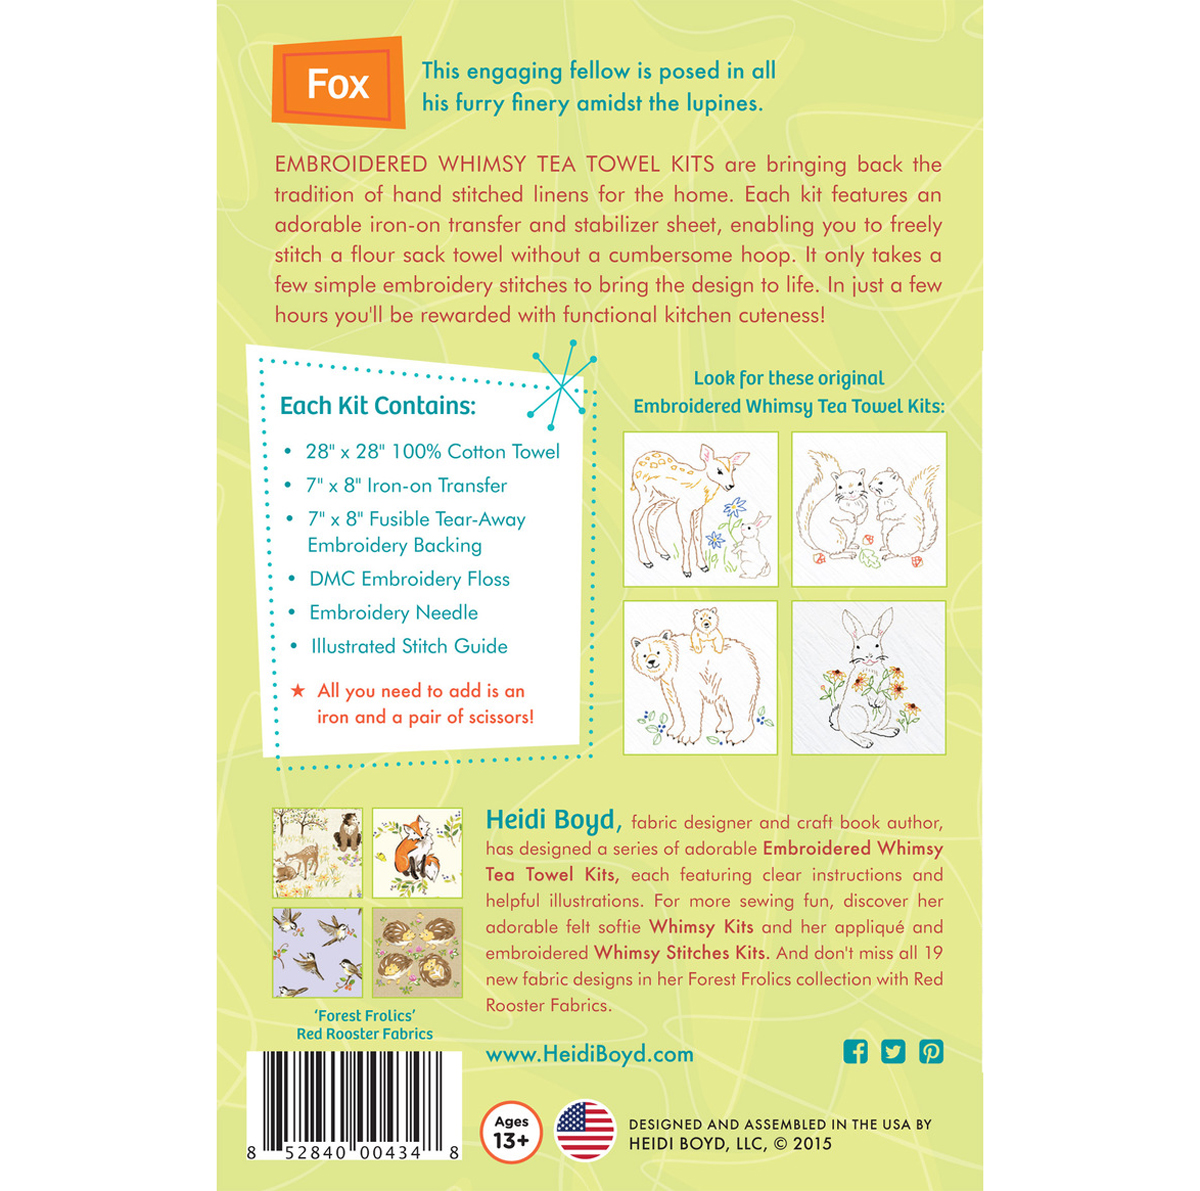 Fox Embroidered Whimsy Tea Towel Kit